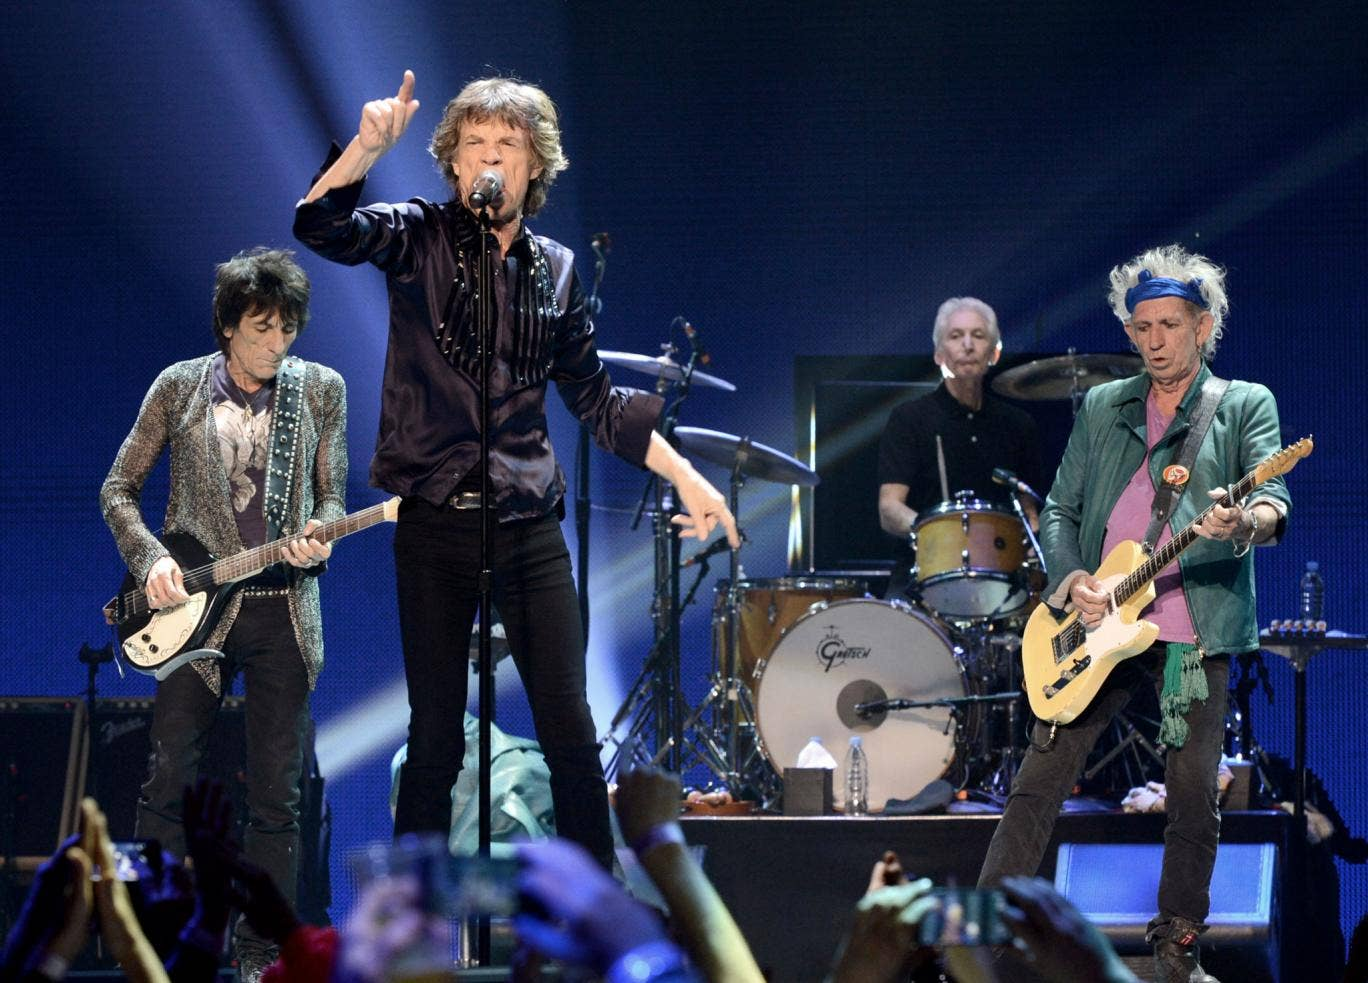 The Rolling Stones will be dropping off at Worthy Farm on their 50 and Counting anniversary jaunt